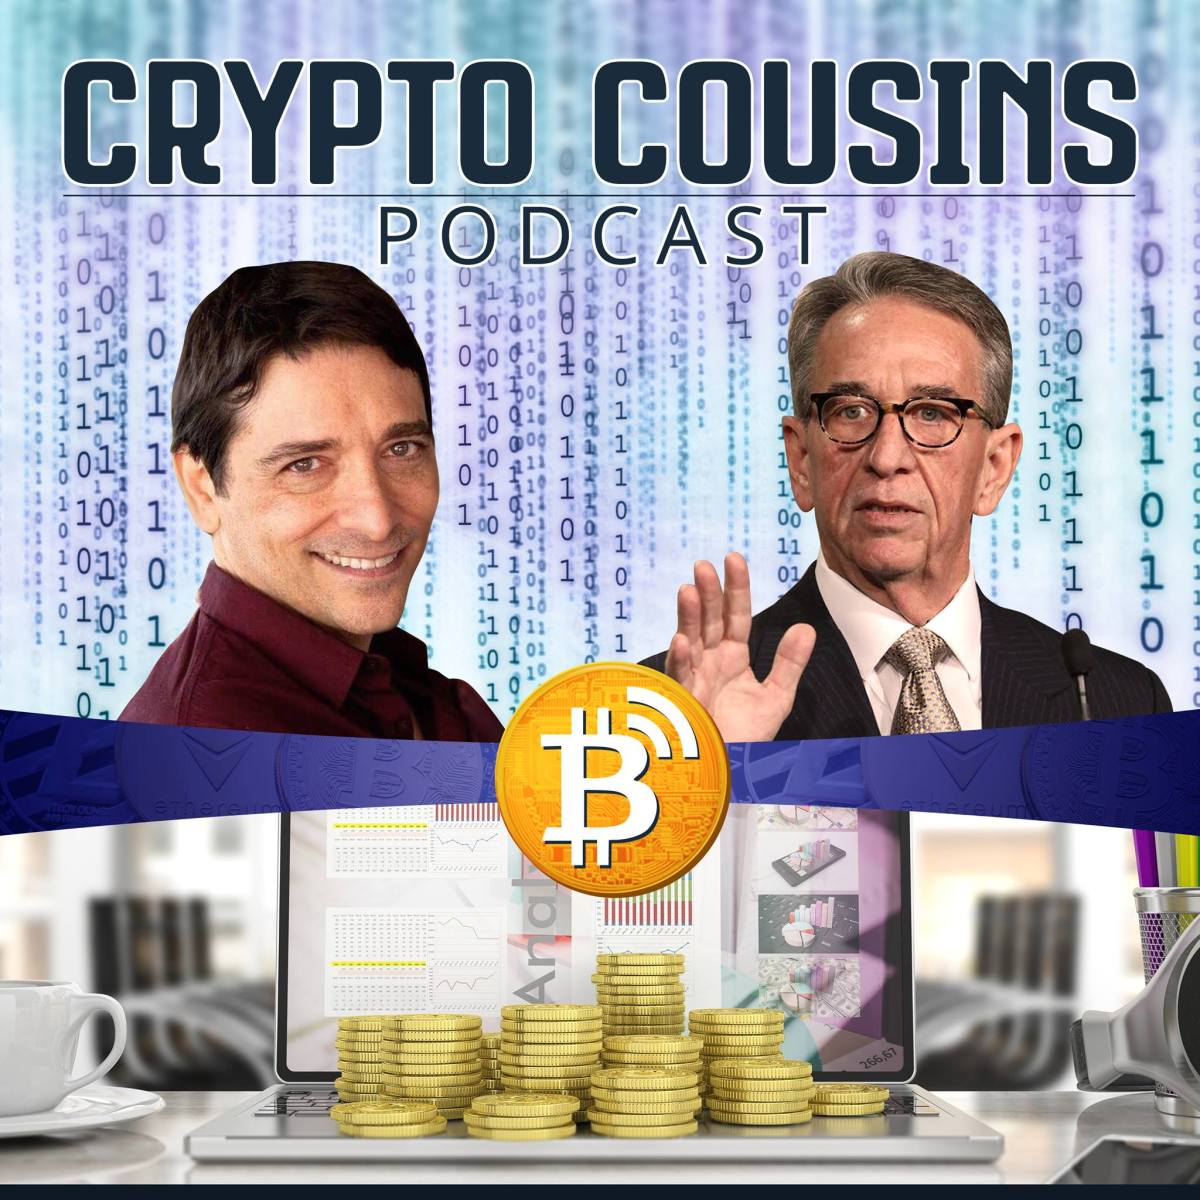 The Crypto Cousins Podcast